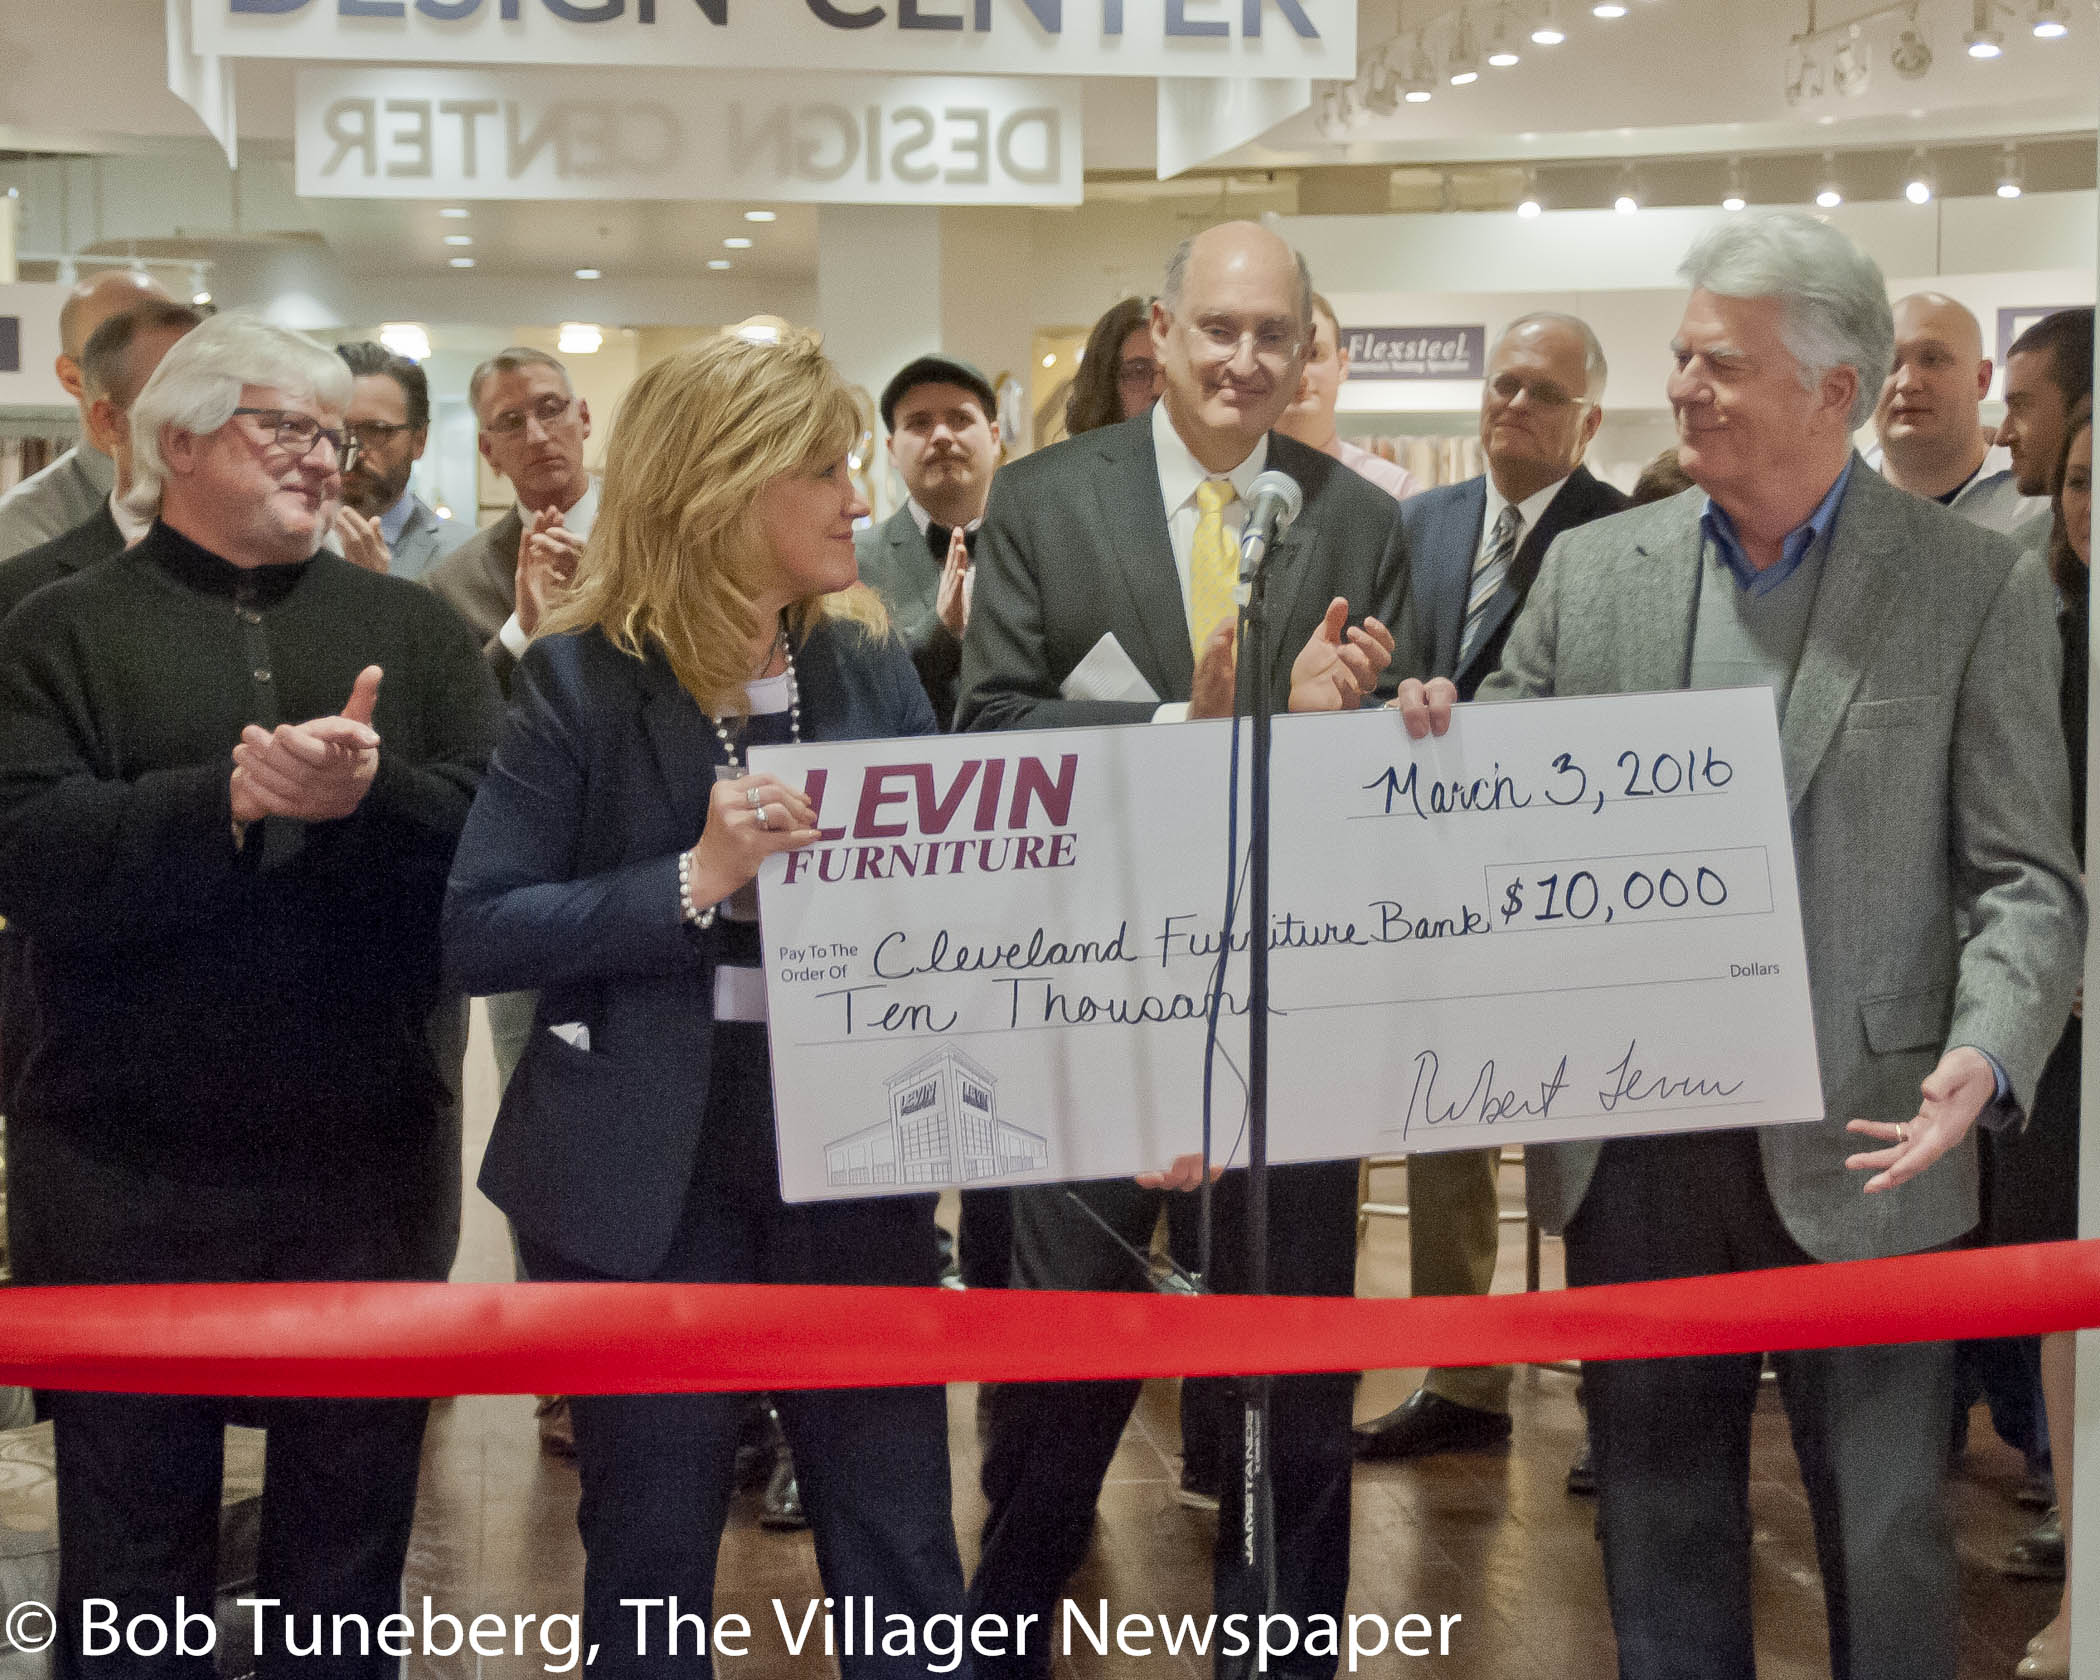 The Grand Opening Of Levin Furniture In Avon This Month Was A Celebration  For The Community As Well As Charitable Organizations Supported By The Store .